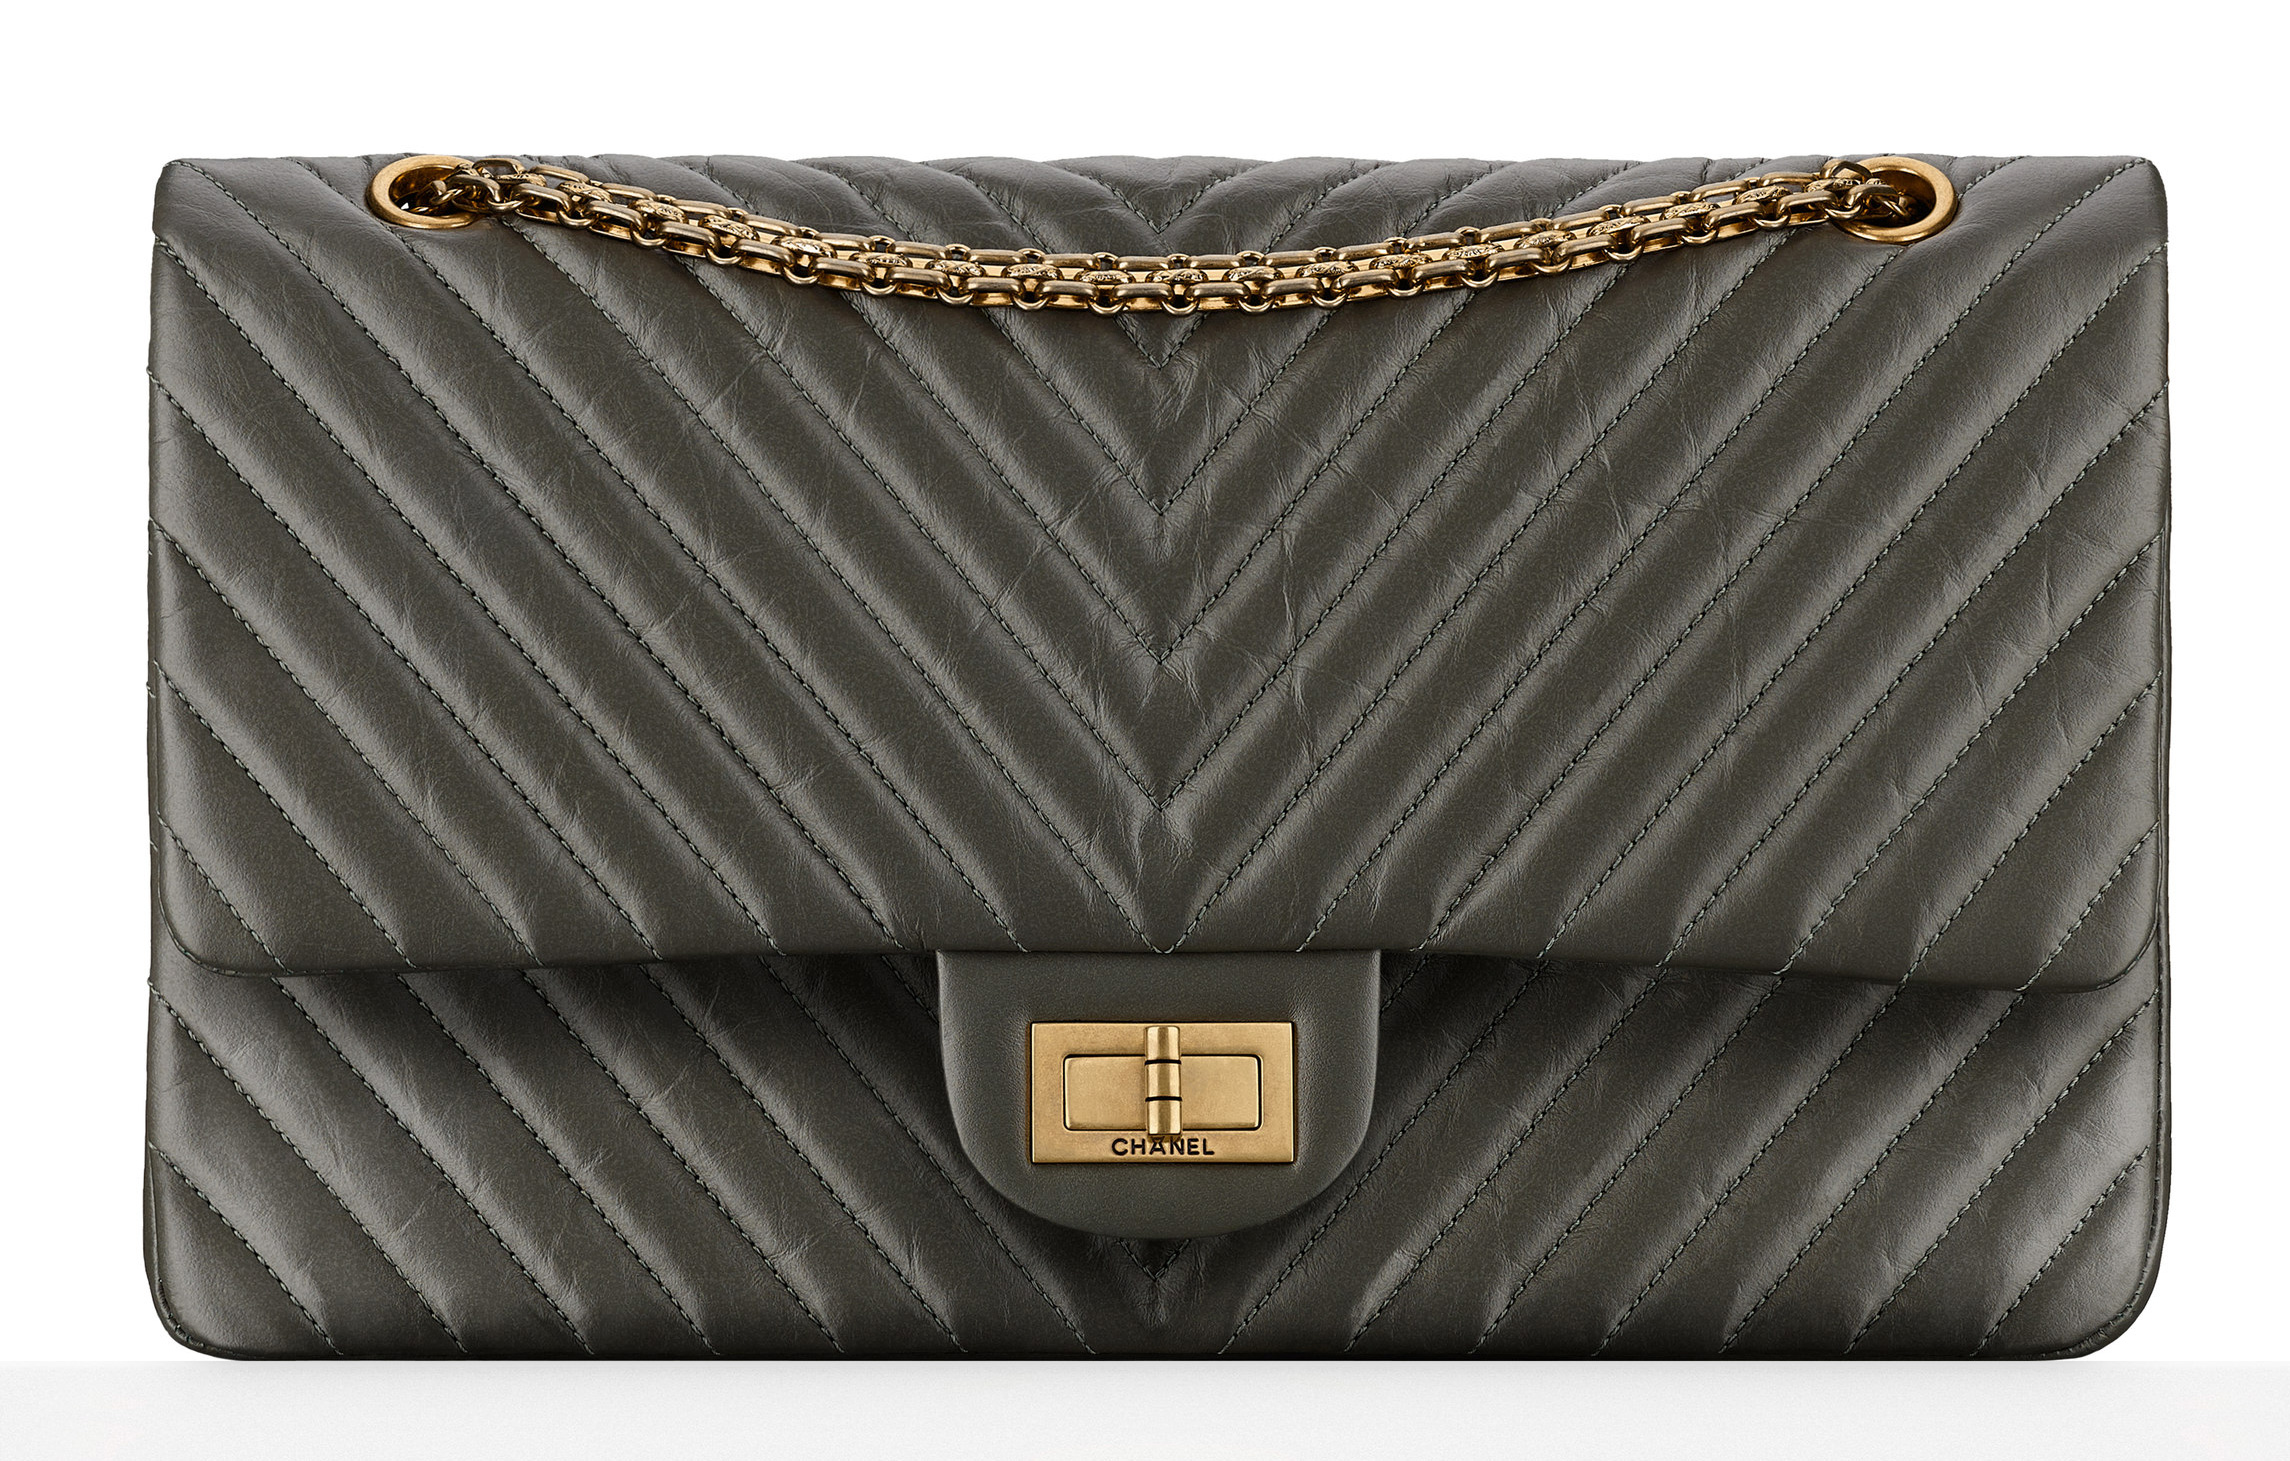 Chanel-255-Chevron-Flap-Bag-6000